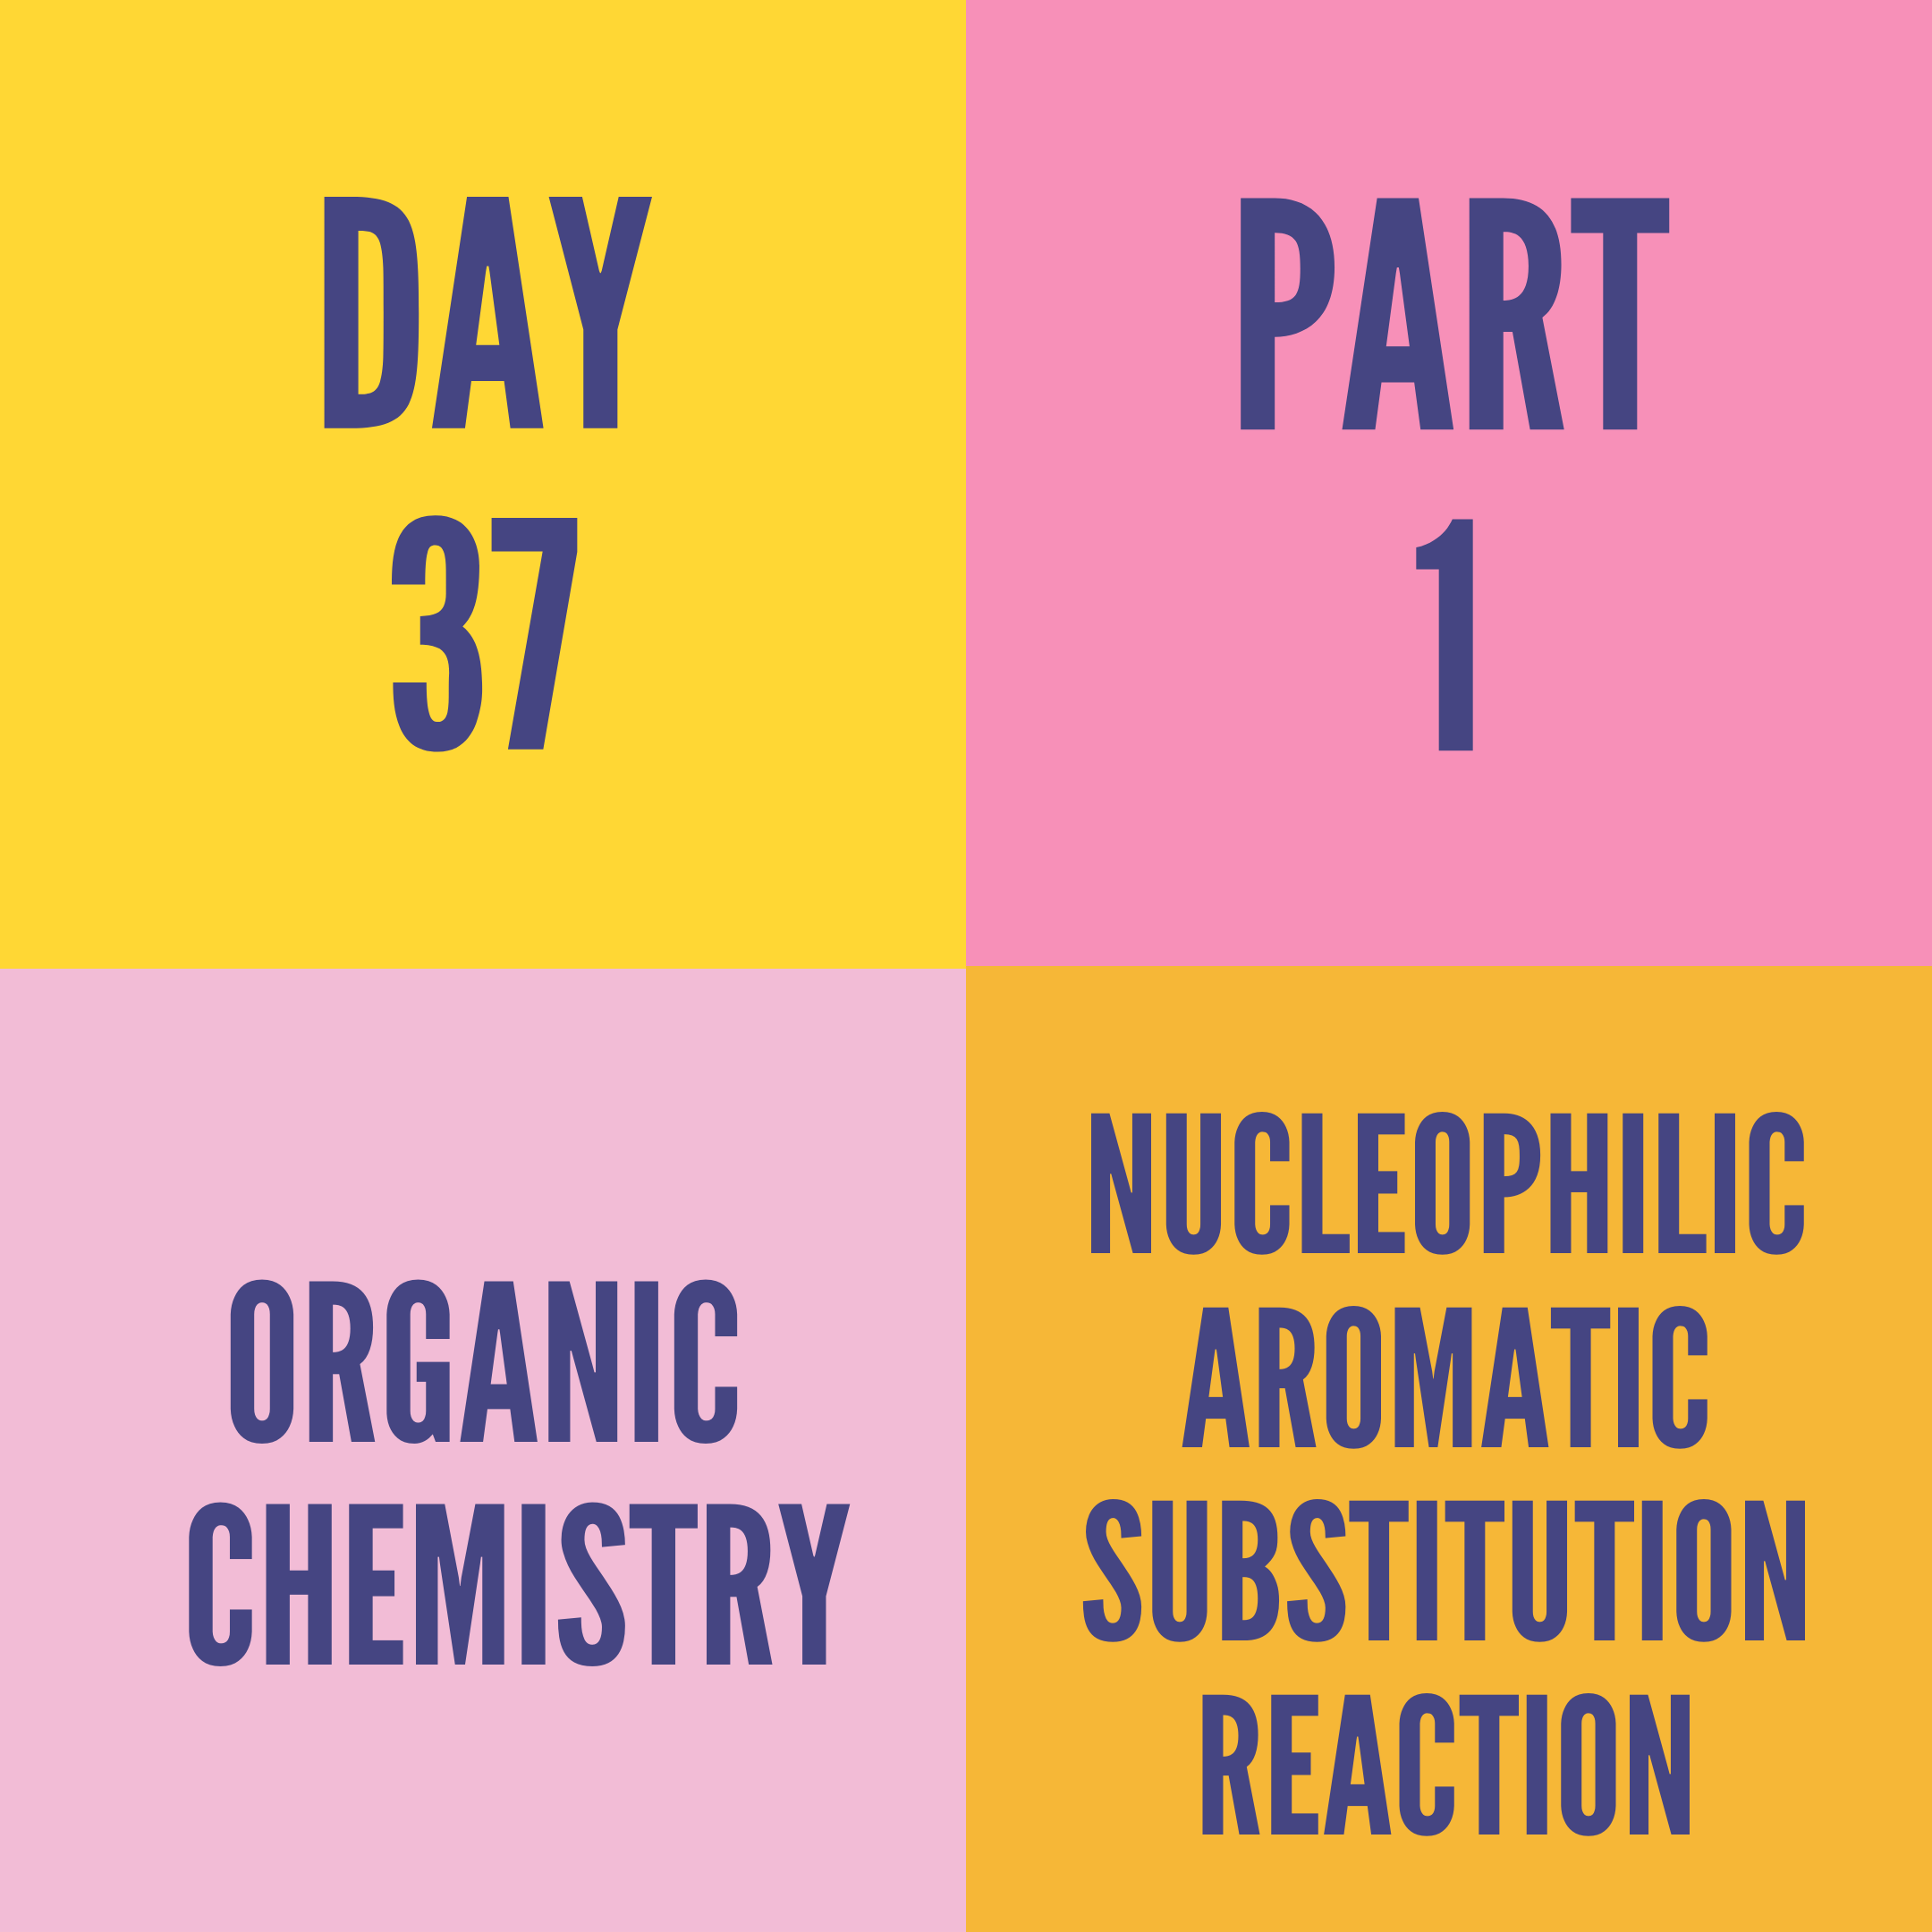 DAY-37 PART-1 NUCLEOPHILIC AROMATIC SUBSTITUTION REACTION